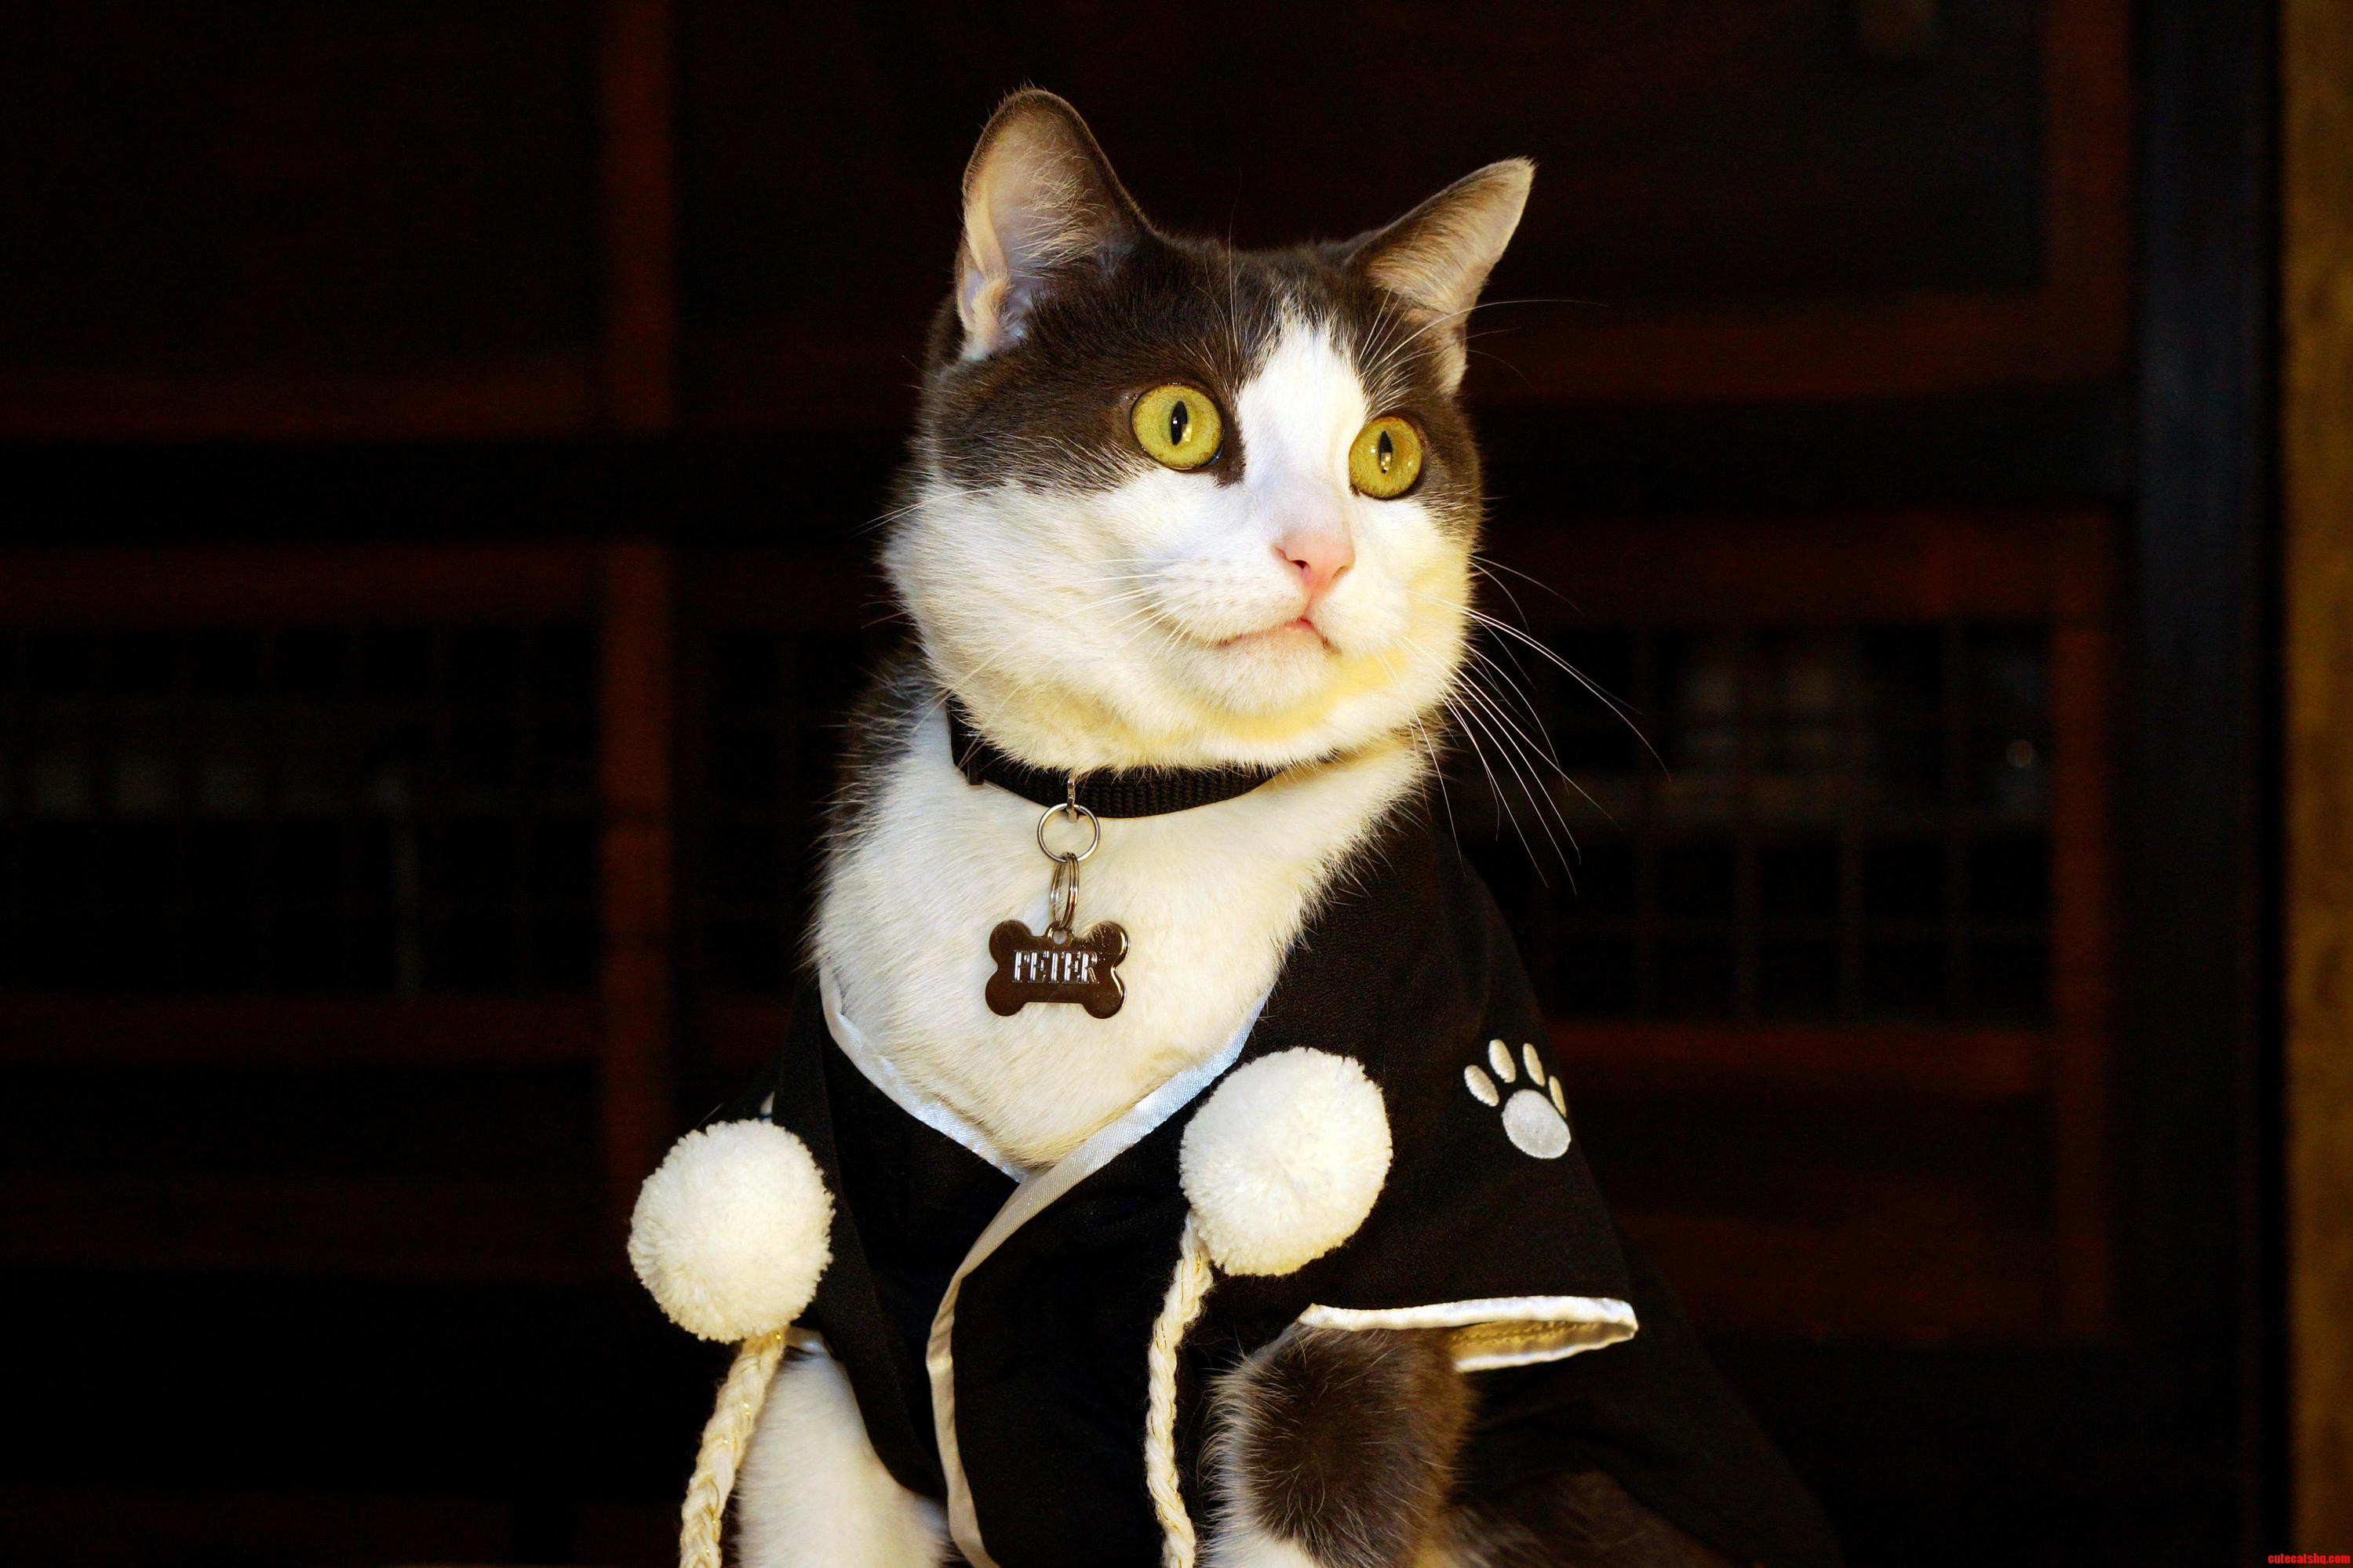 Samurai cat peter may kill us in our sleep for making him wear this